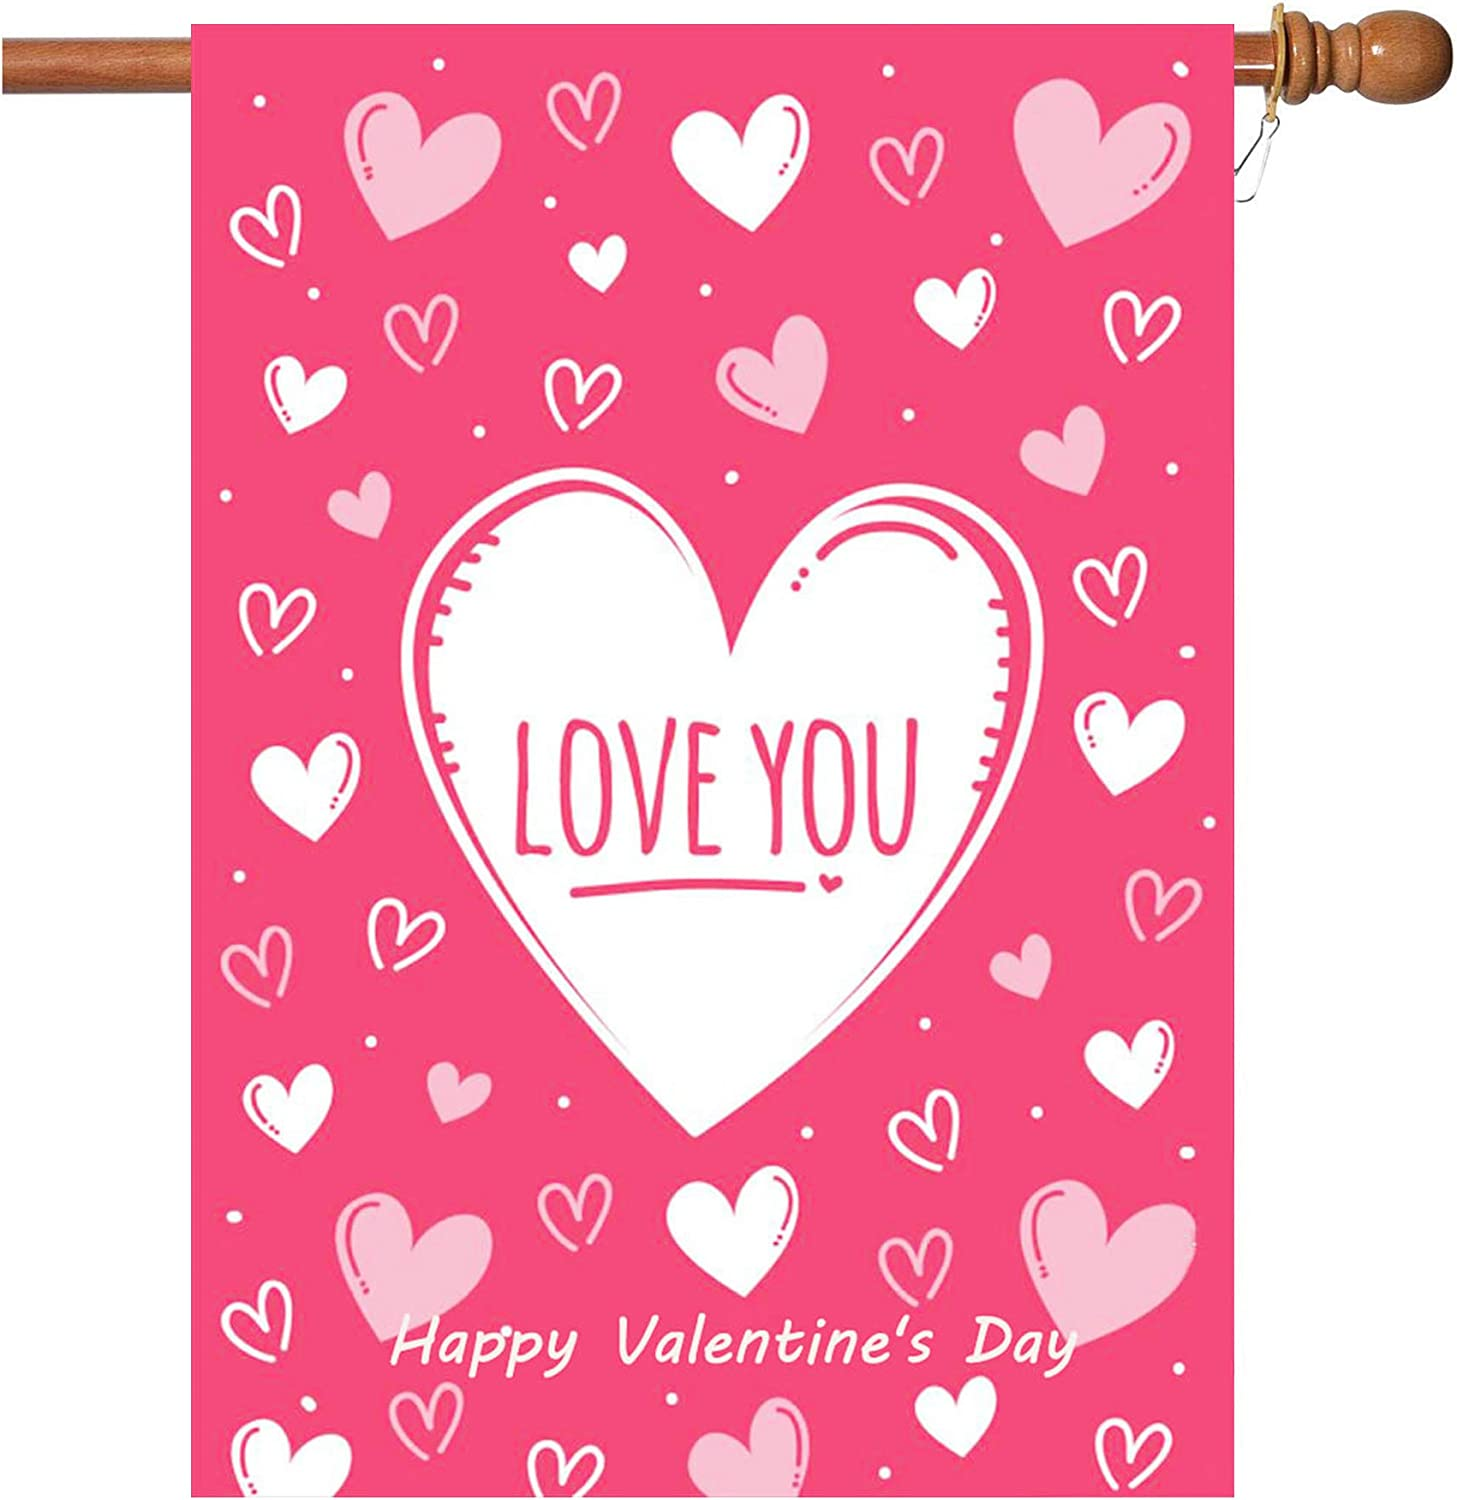 W&X Valentine's Day Flag,28x40 Inch Valentine's Heart Garden Flag with Two Grommets Double Sided Printing 2 Layer Burlap Valentine Flags for Your Valentine's Day Decoration